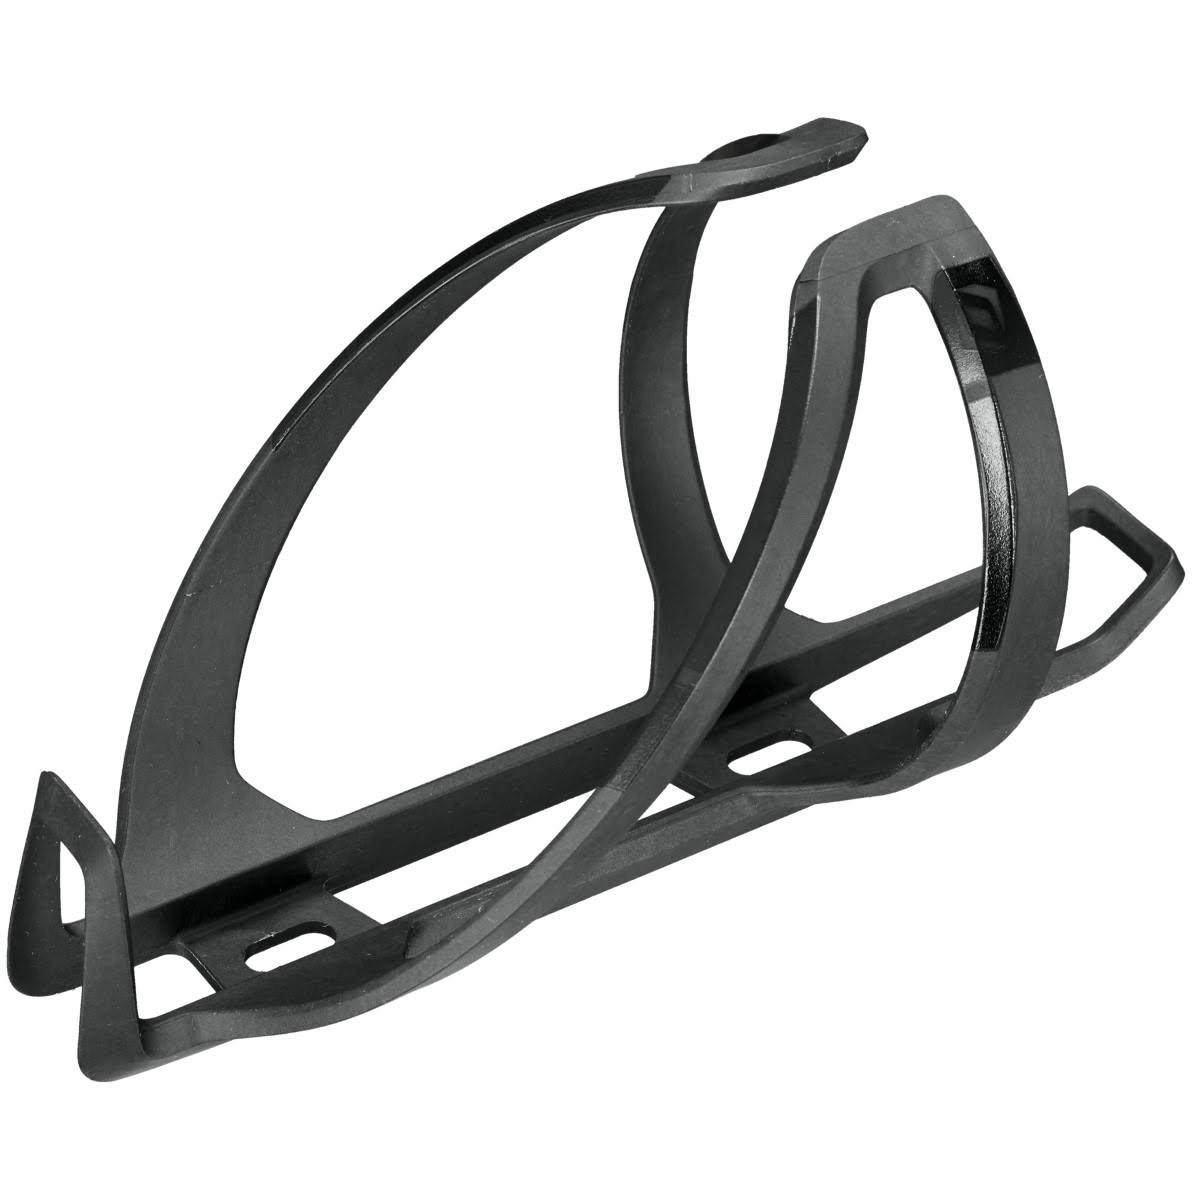 Syncros Coupe Cage 1.0 Bottle Cage - Center Load Carbon Composite